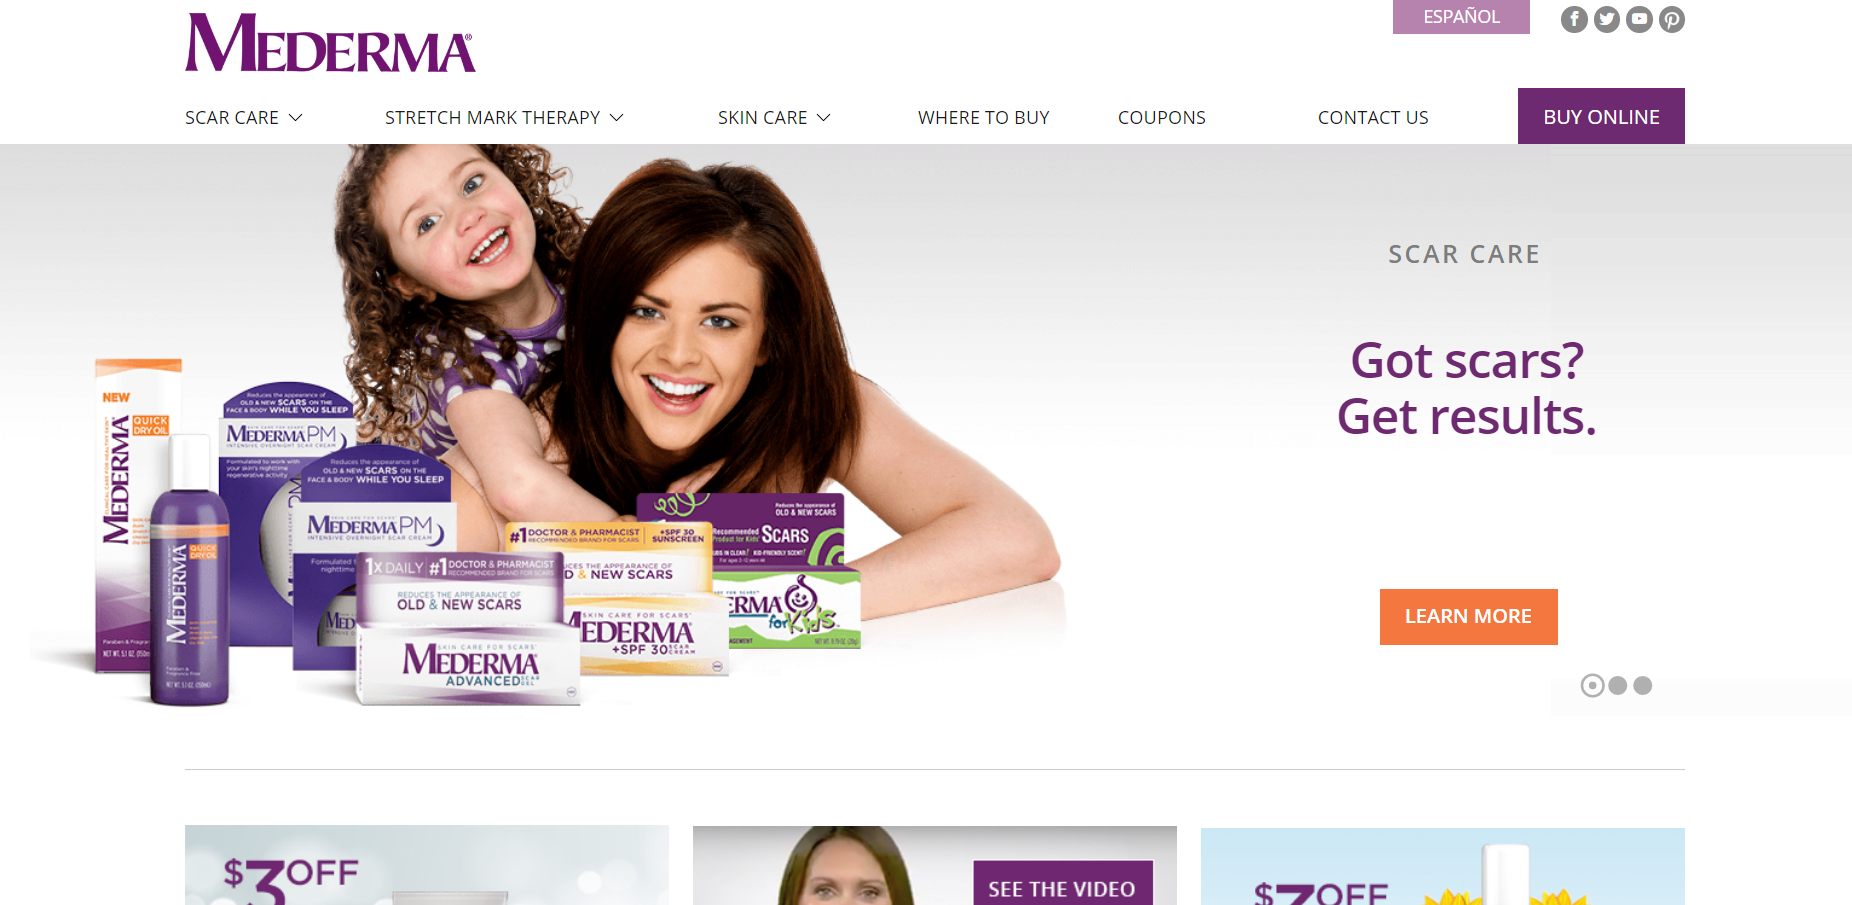 Mederma Coupons